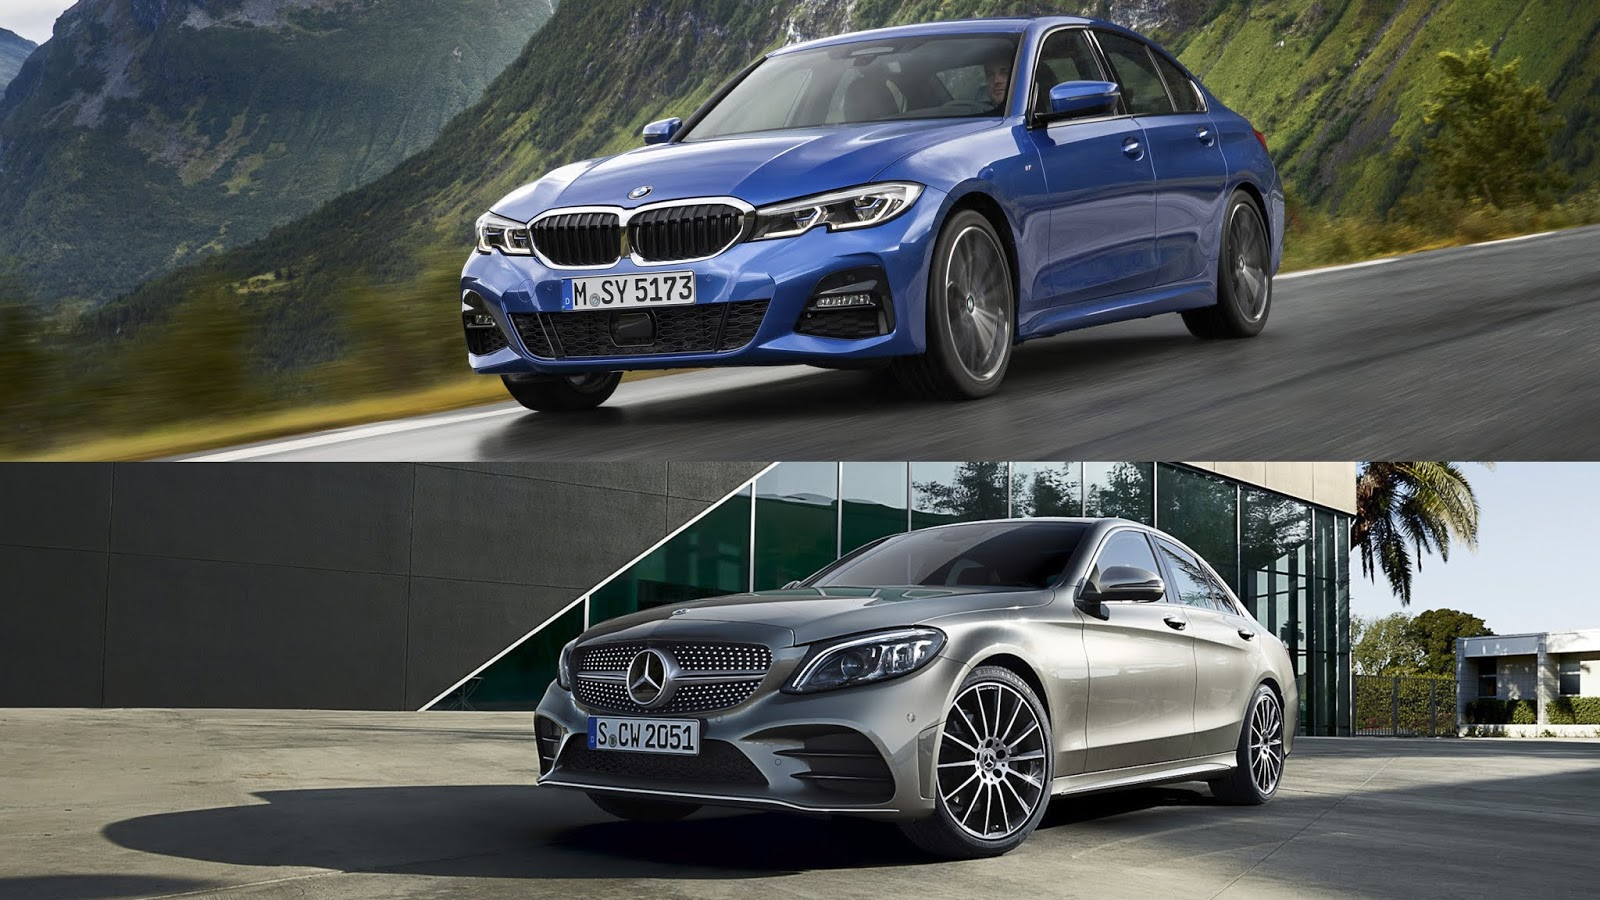 2019 bmw 3 series vs 2019 mercedes c class page of pro. Black Bedroom Furniture Sets. Home Design Ideas